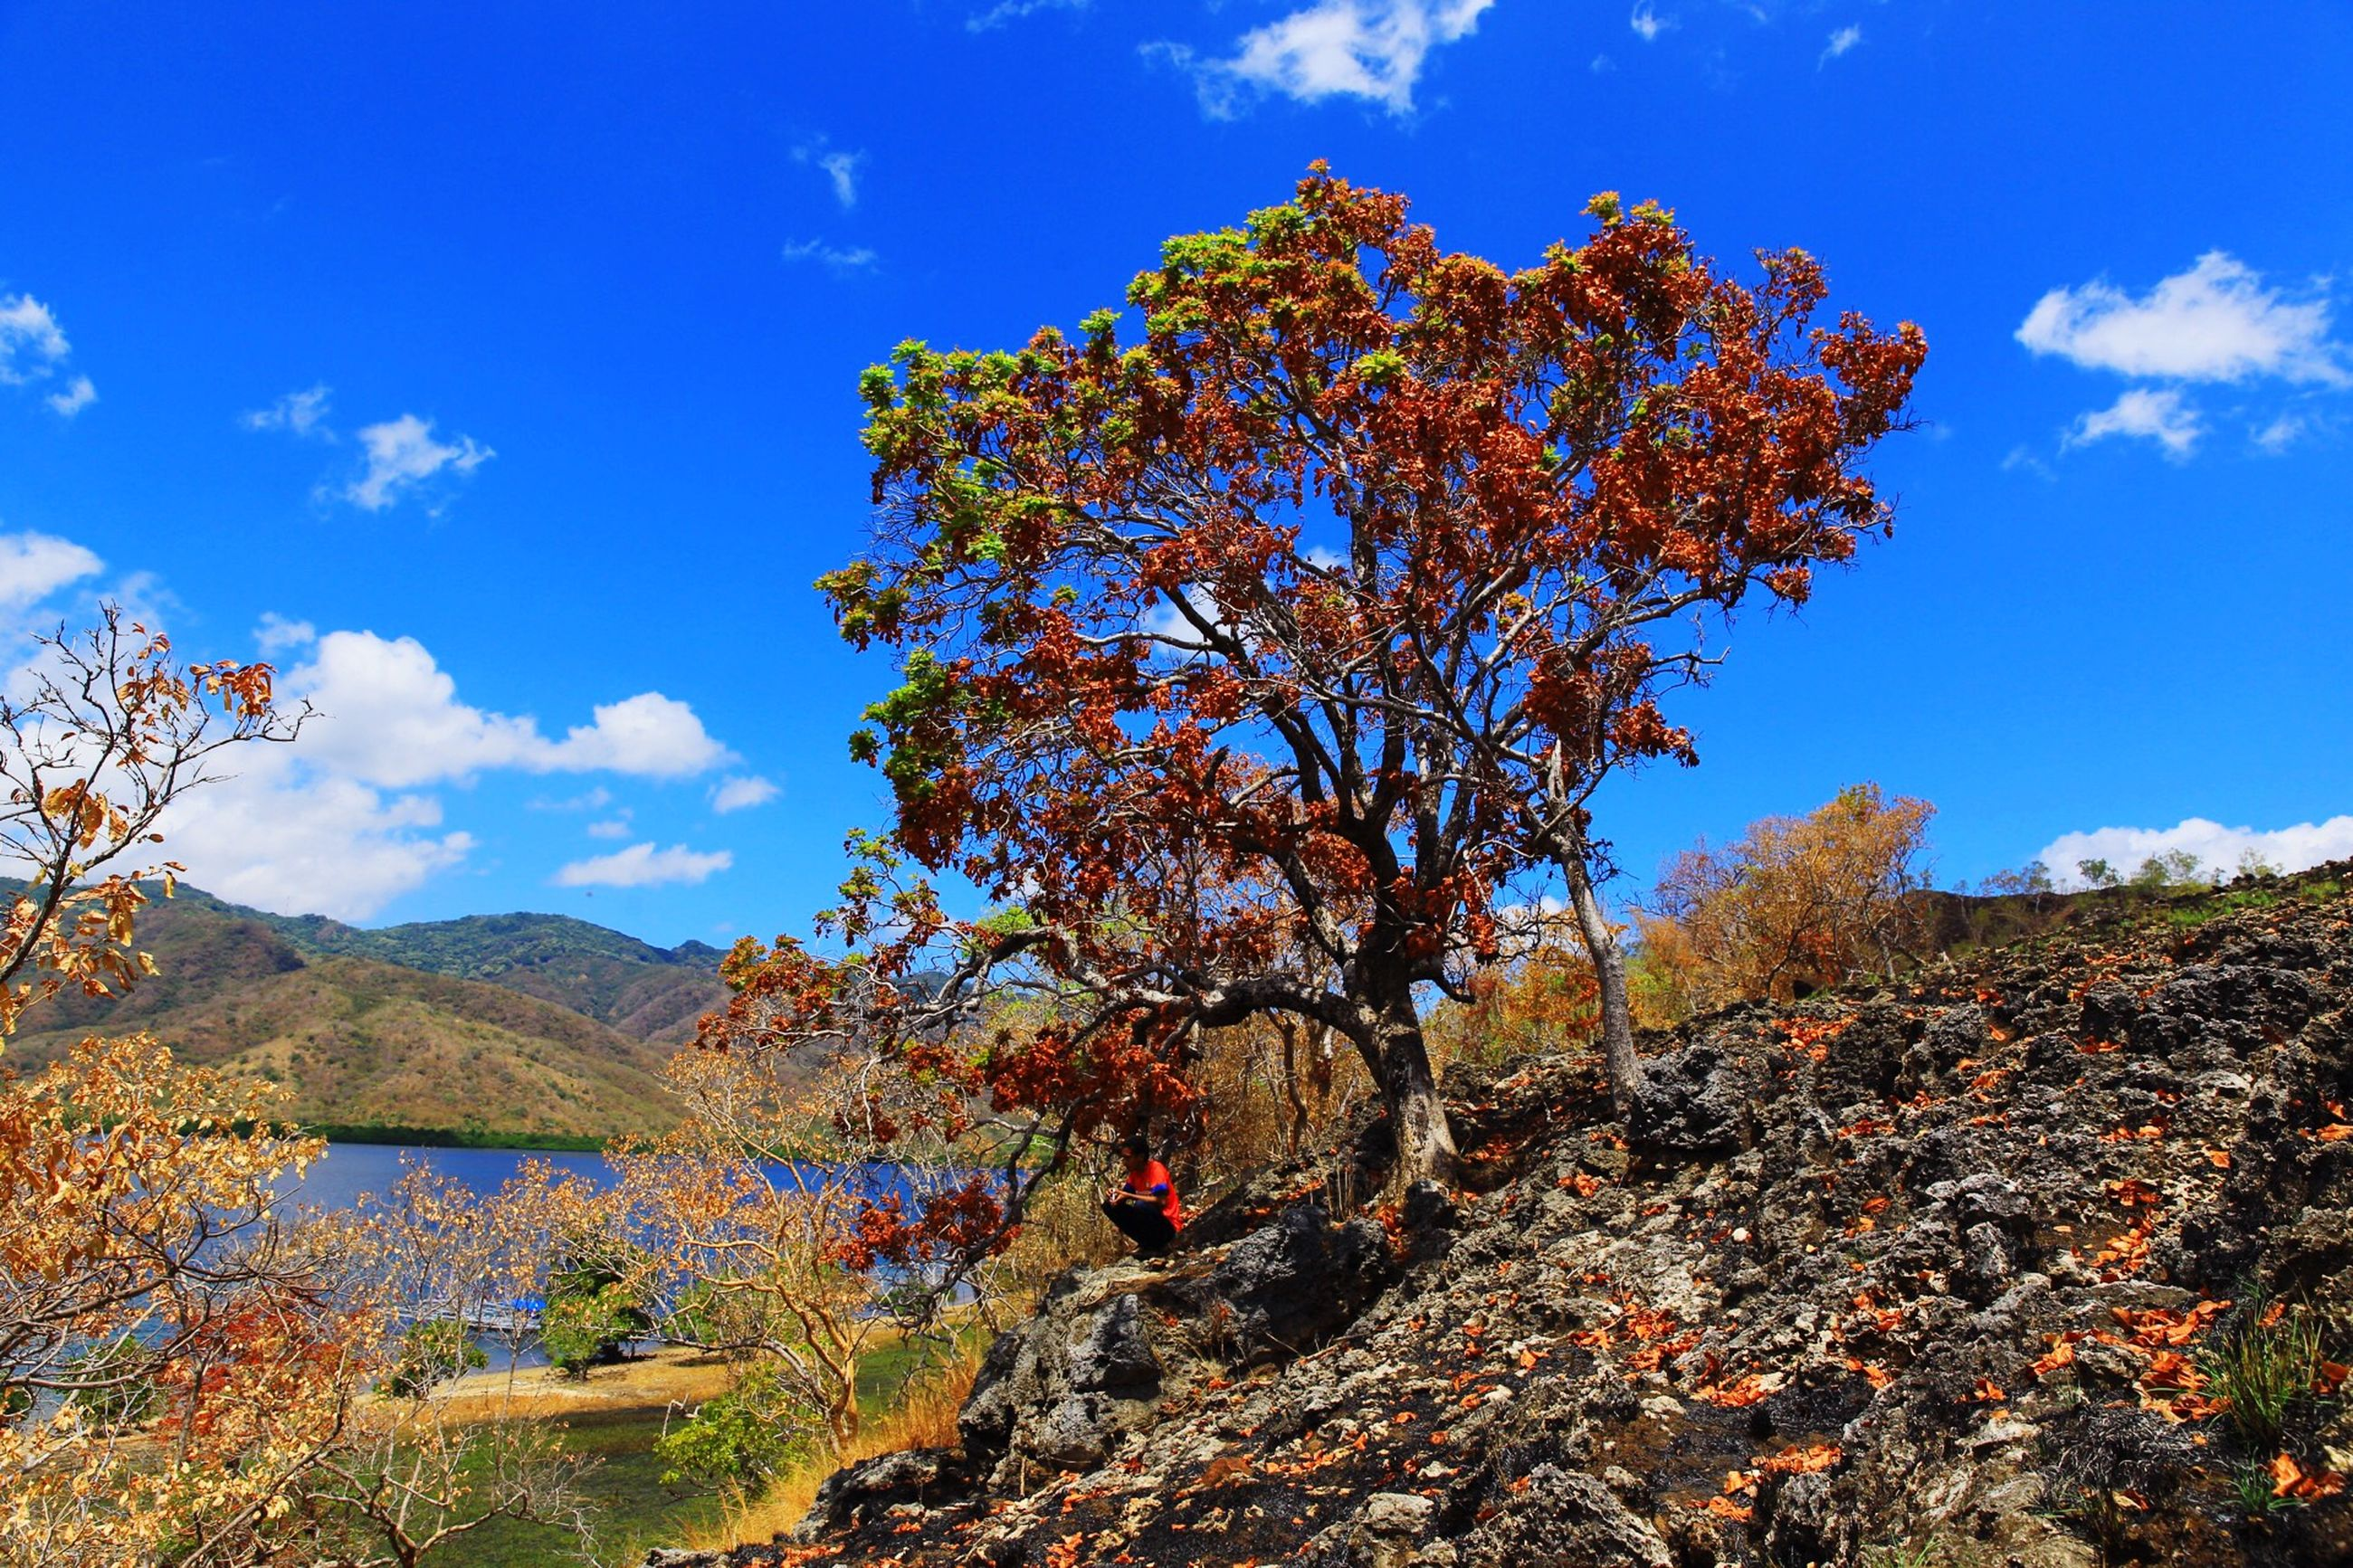 tree, sky, tranquility, tranquil scene, beauty in nature, blue, scenics, mountain, nature, landscape, sunlight, growth, cloud, cloud - sky, non-urban scene, idyllic, day, autumn, no people, branch